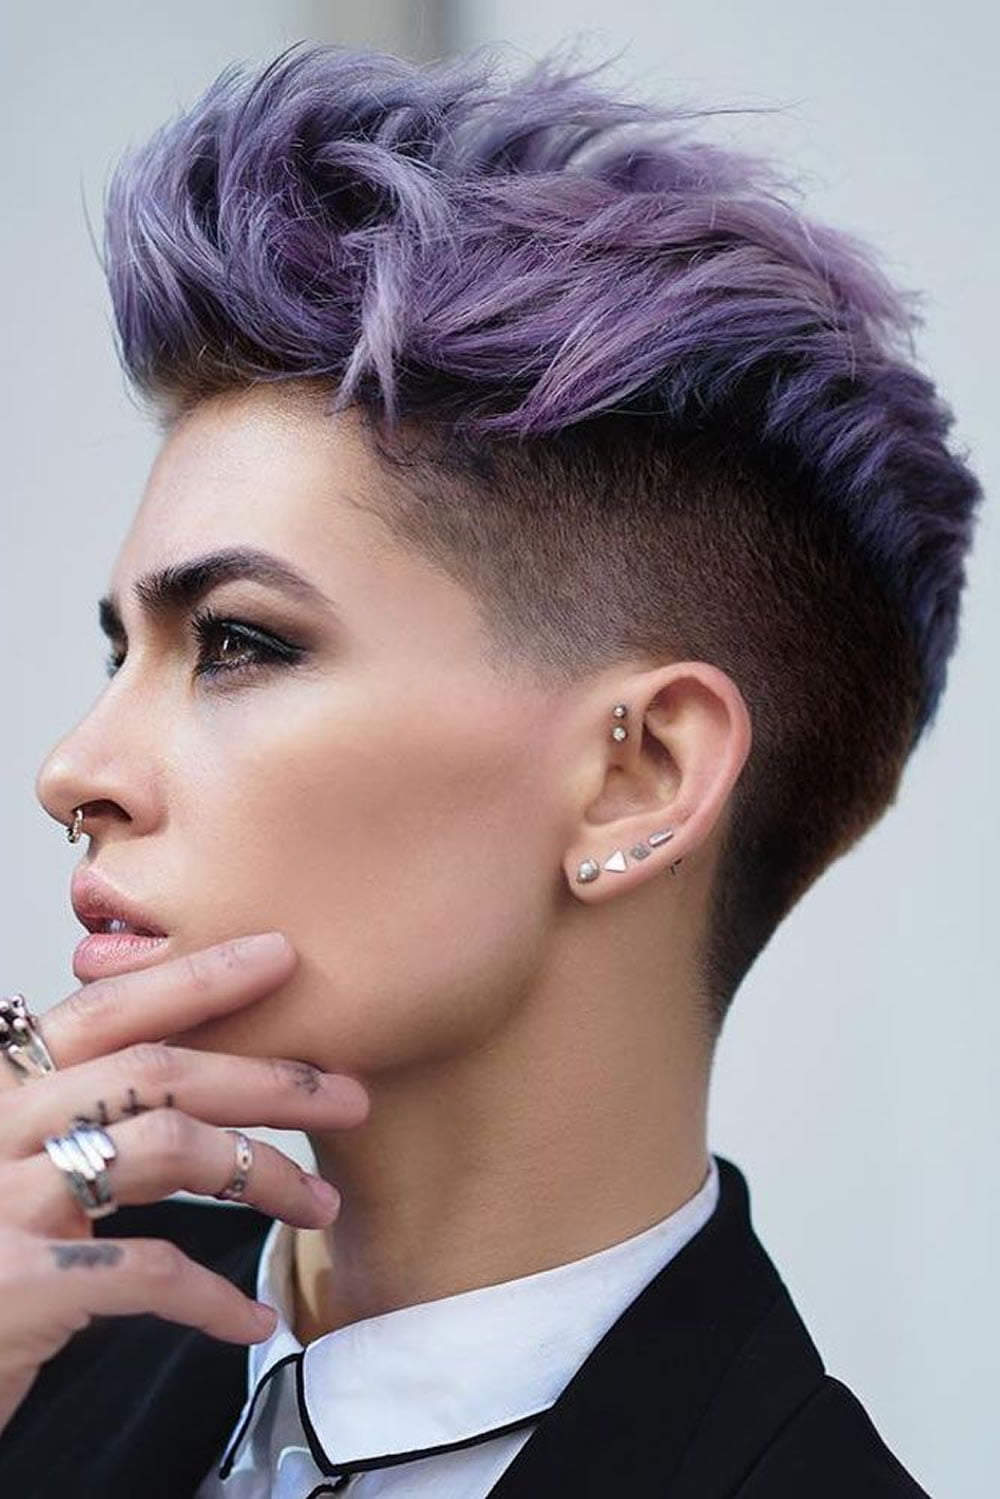 Undercut Short Pixie Hairstyles For Ladies 2018 2019 Page 2